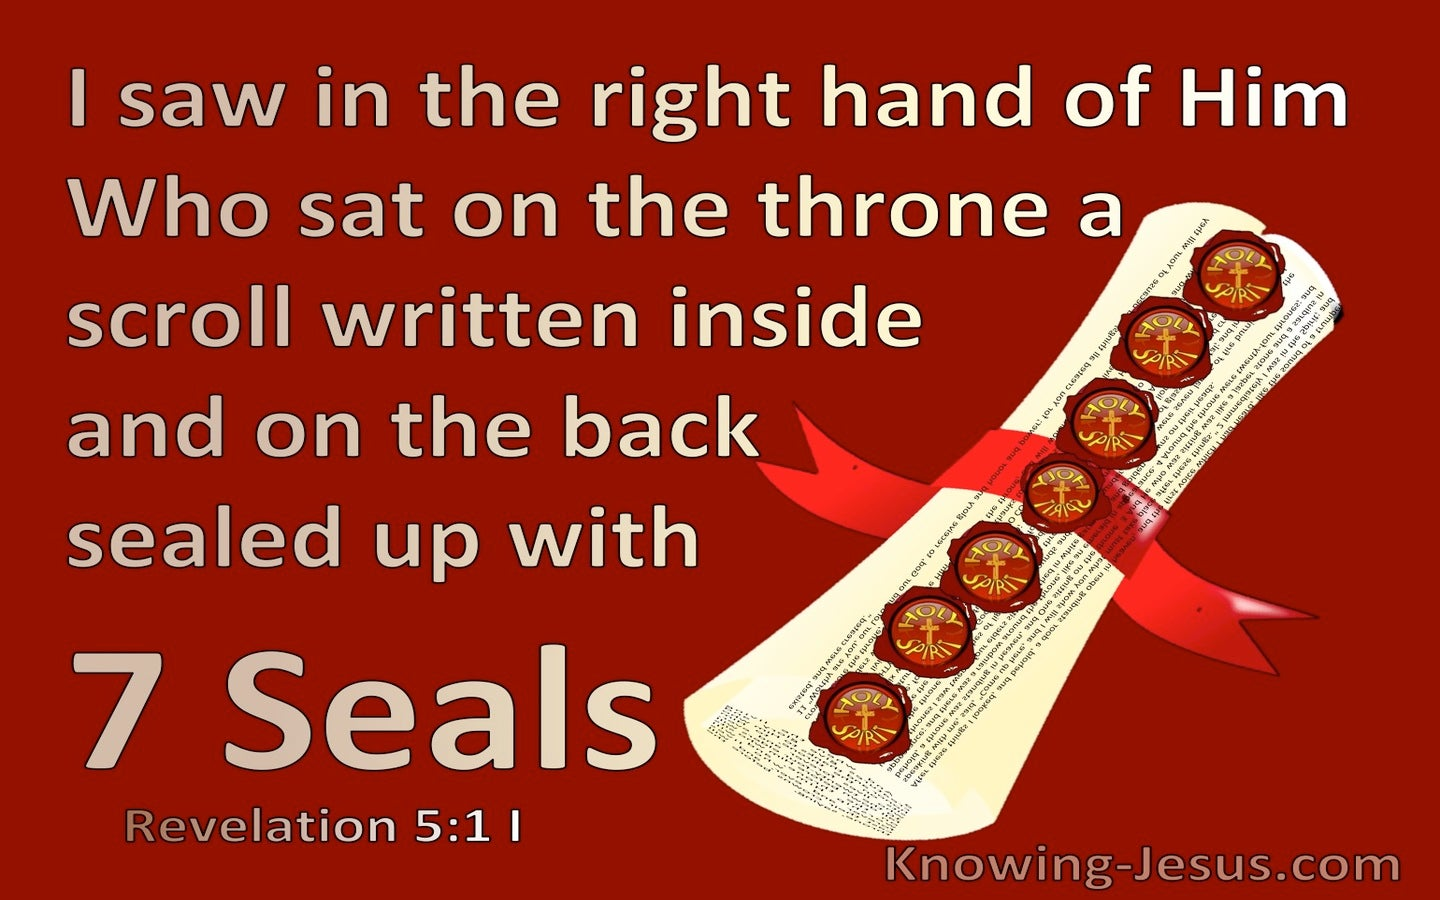 Revelation 5:1 A Scroll Written Inside and on the back (red)